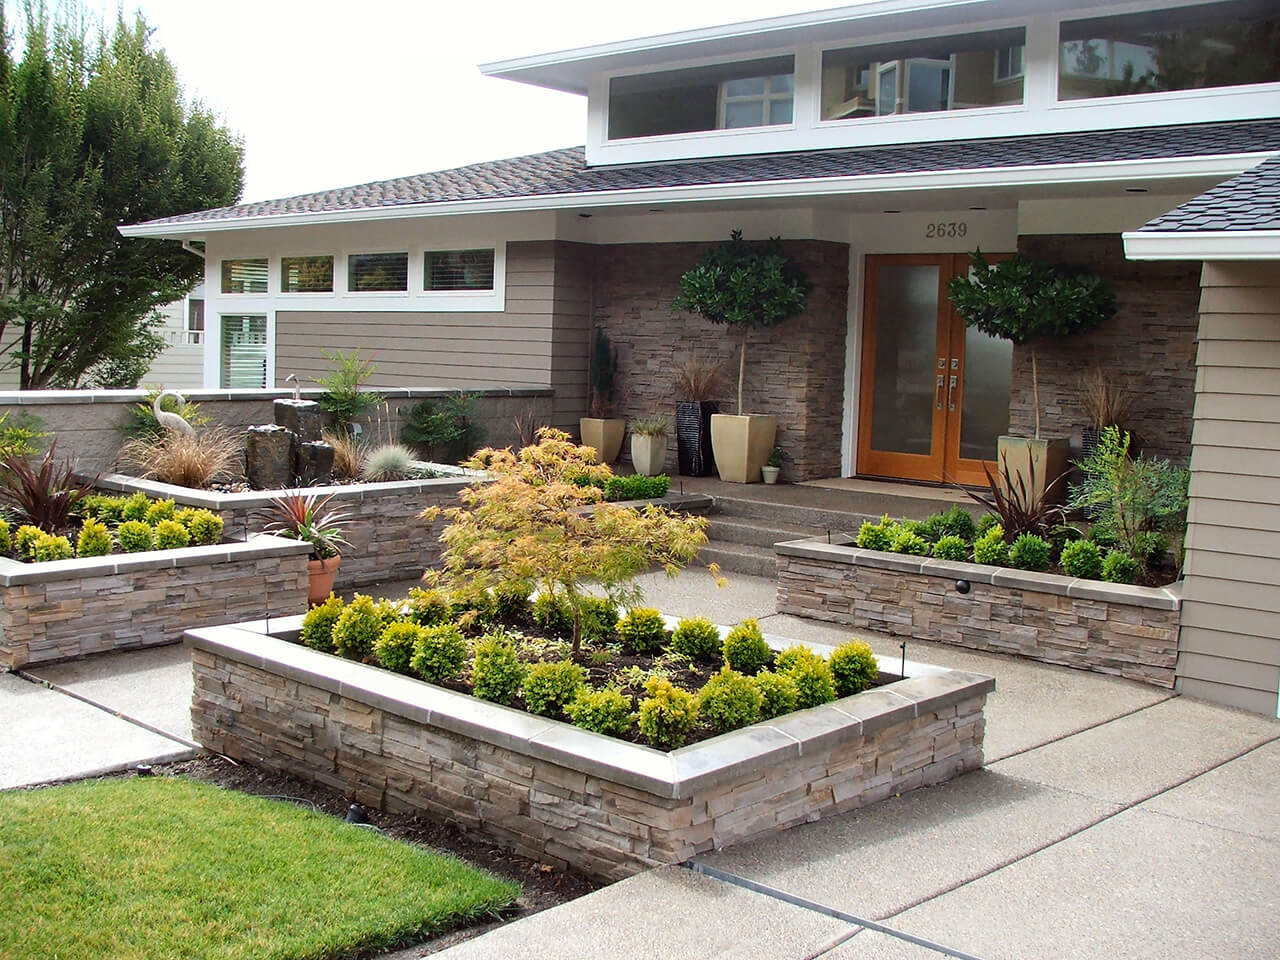 20 brilliant front garden landscaping ideas style motivation for Front yard lawn ideas